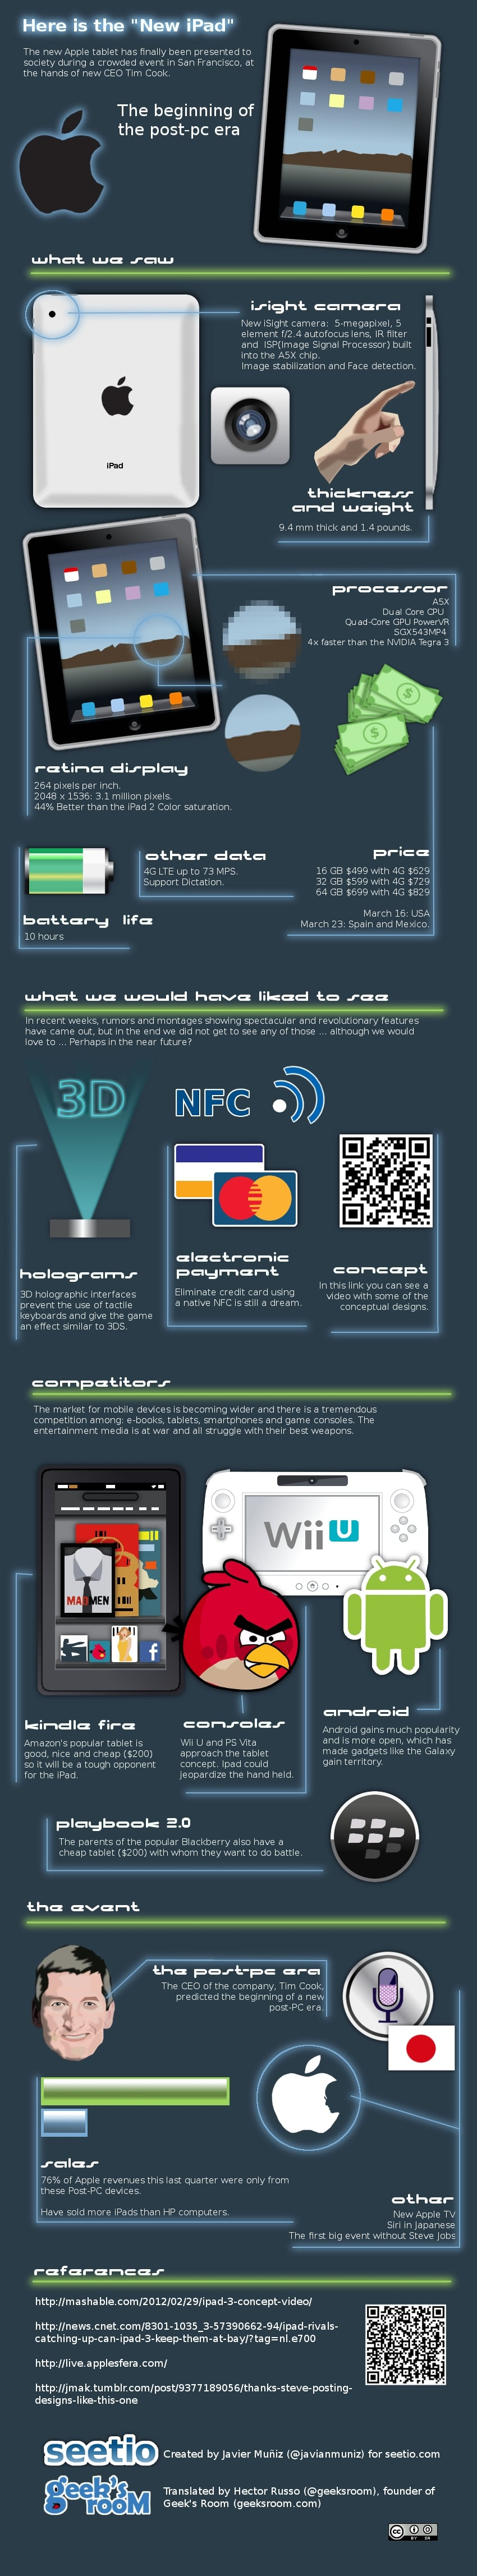 the-new-ipad-infographic